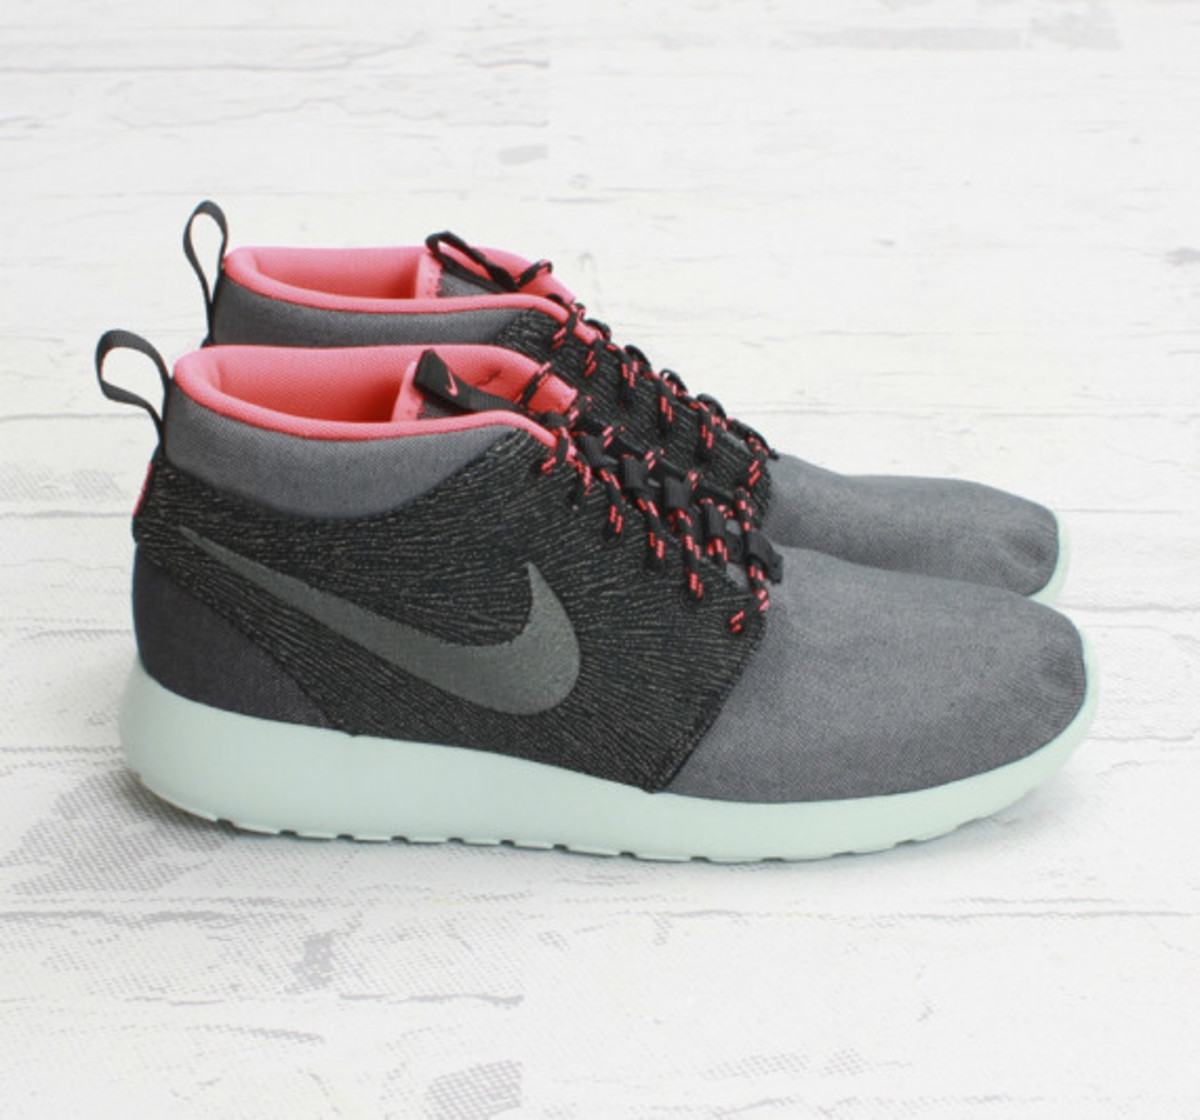 nike-roshe-run-mid-city-pack-585898-333-tokyo-concepts-boston-05